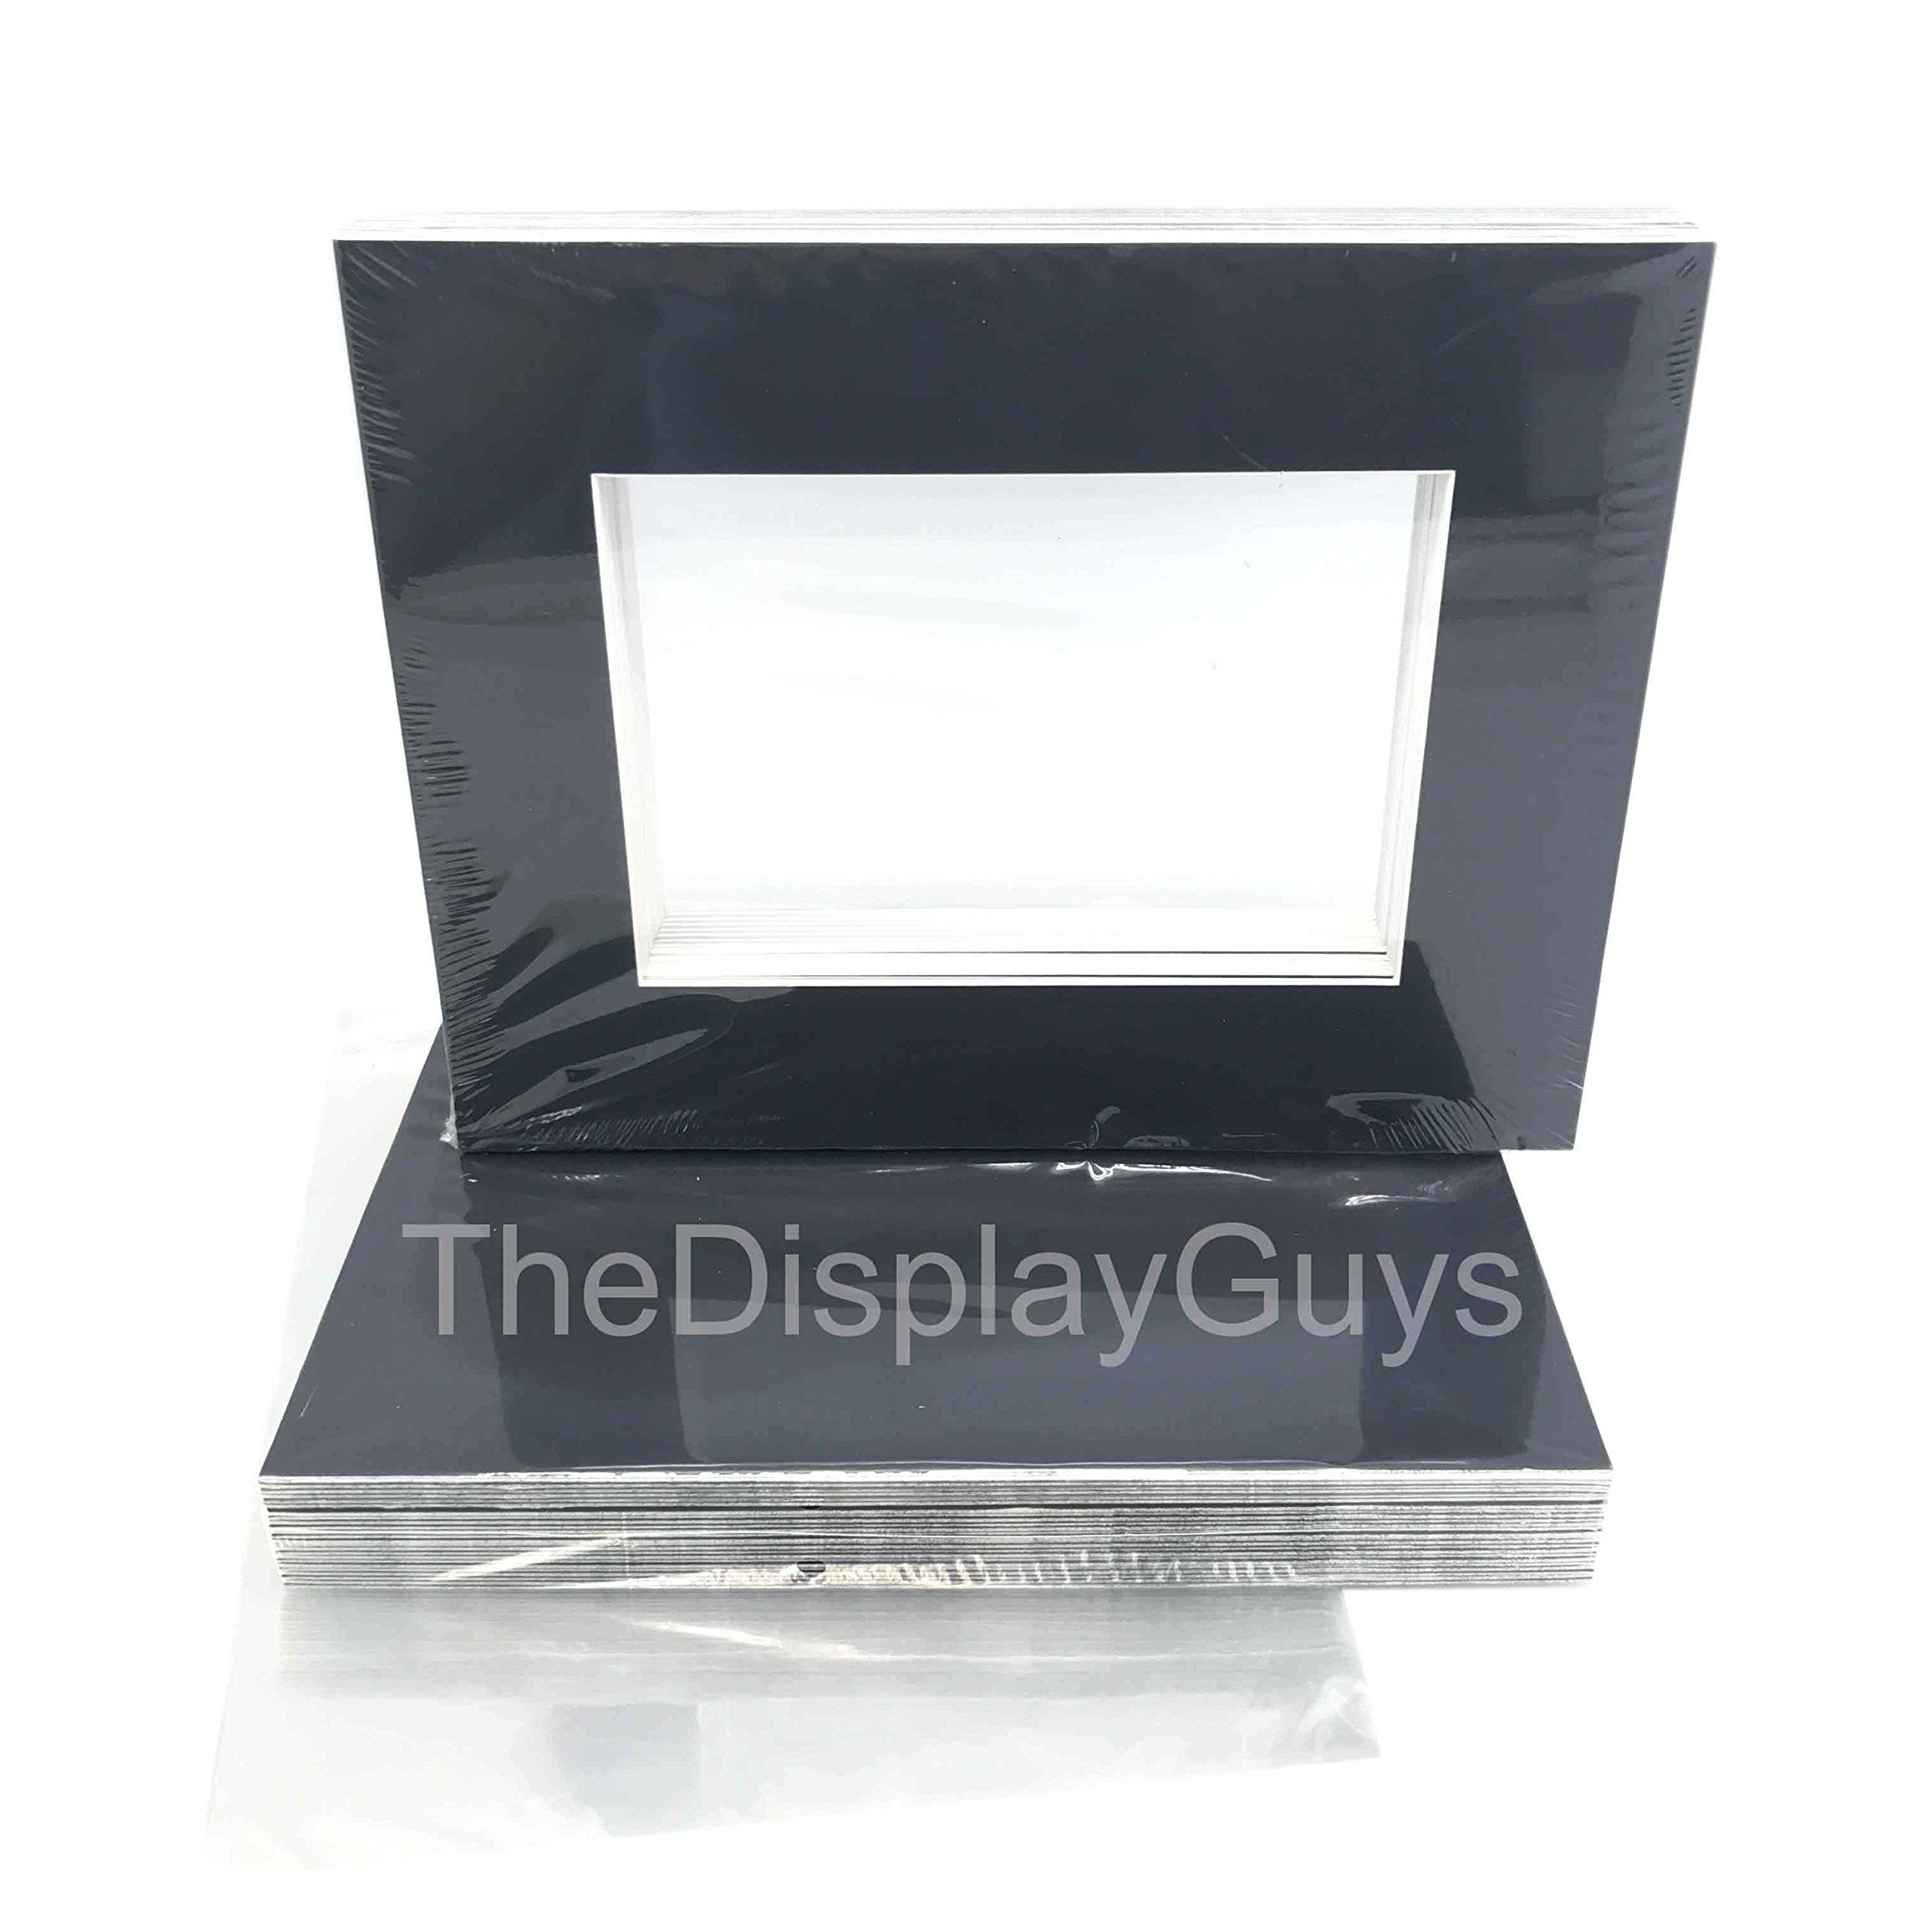 The Display Guys, 25 Sets 5x7'' inches Black Picture Photo Matting Mats Boards (White Core Bevel Cut) + Black Back Boards + Clear Plastic Bags (25 pcs Black Complete Set) by The Display Guys